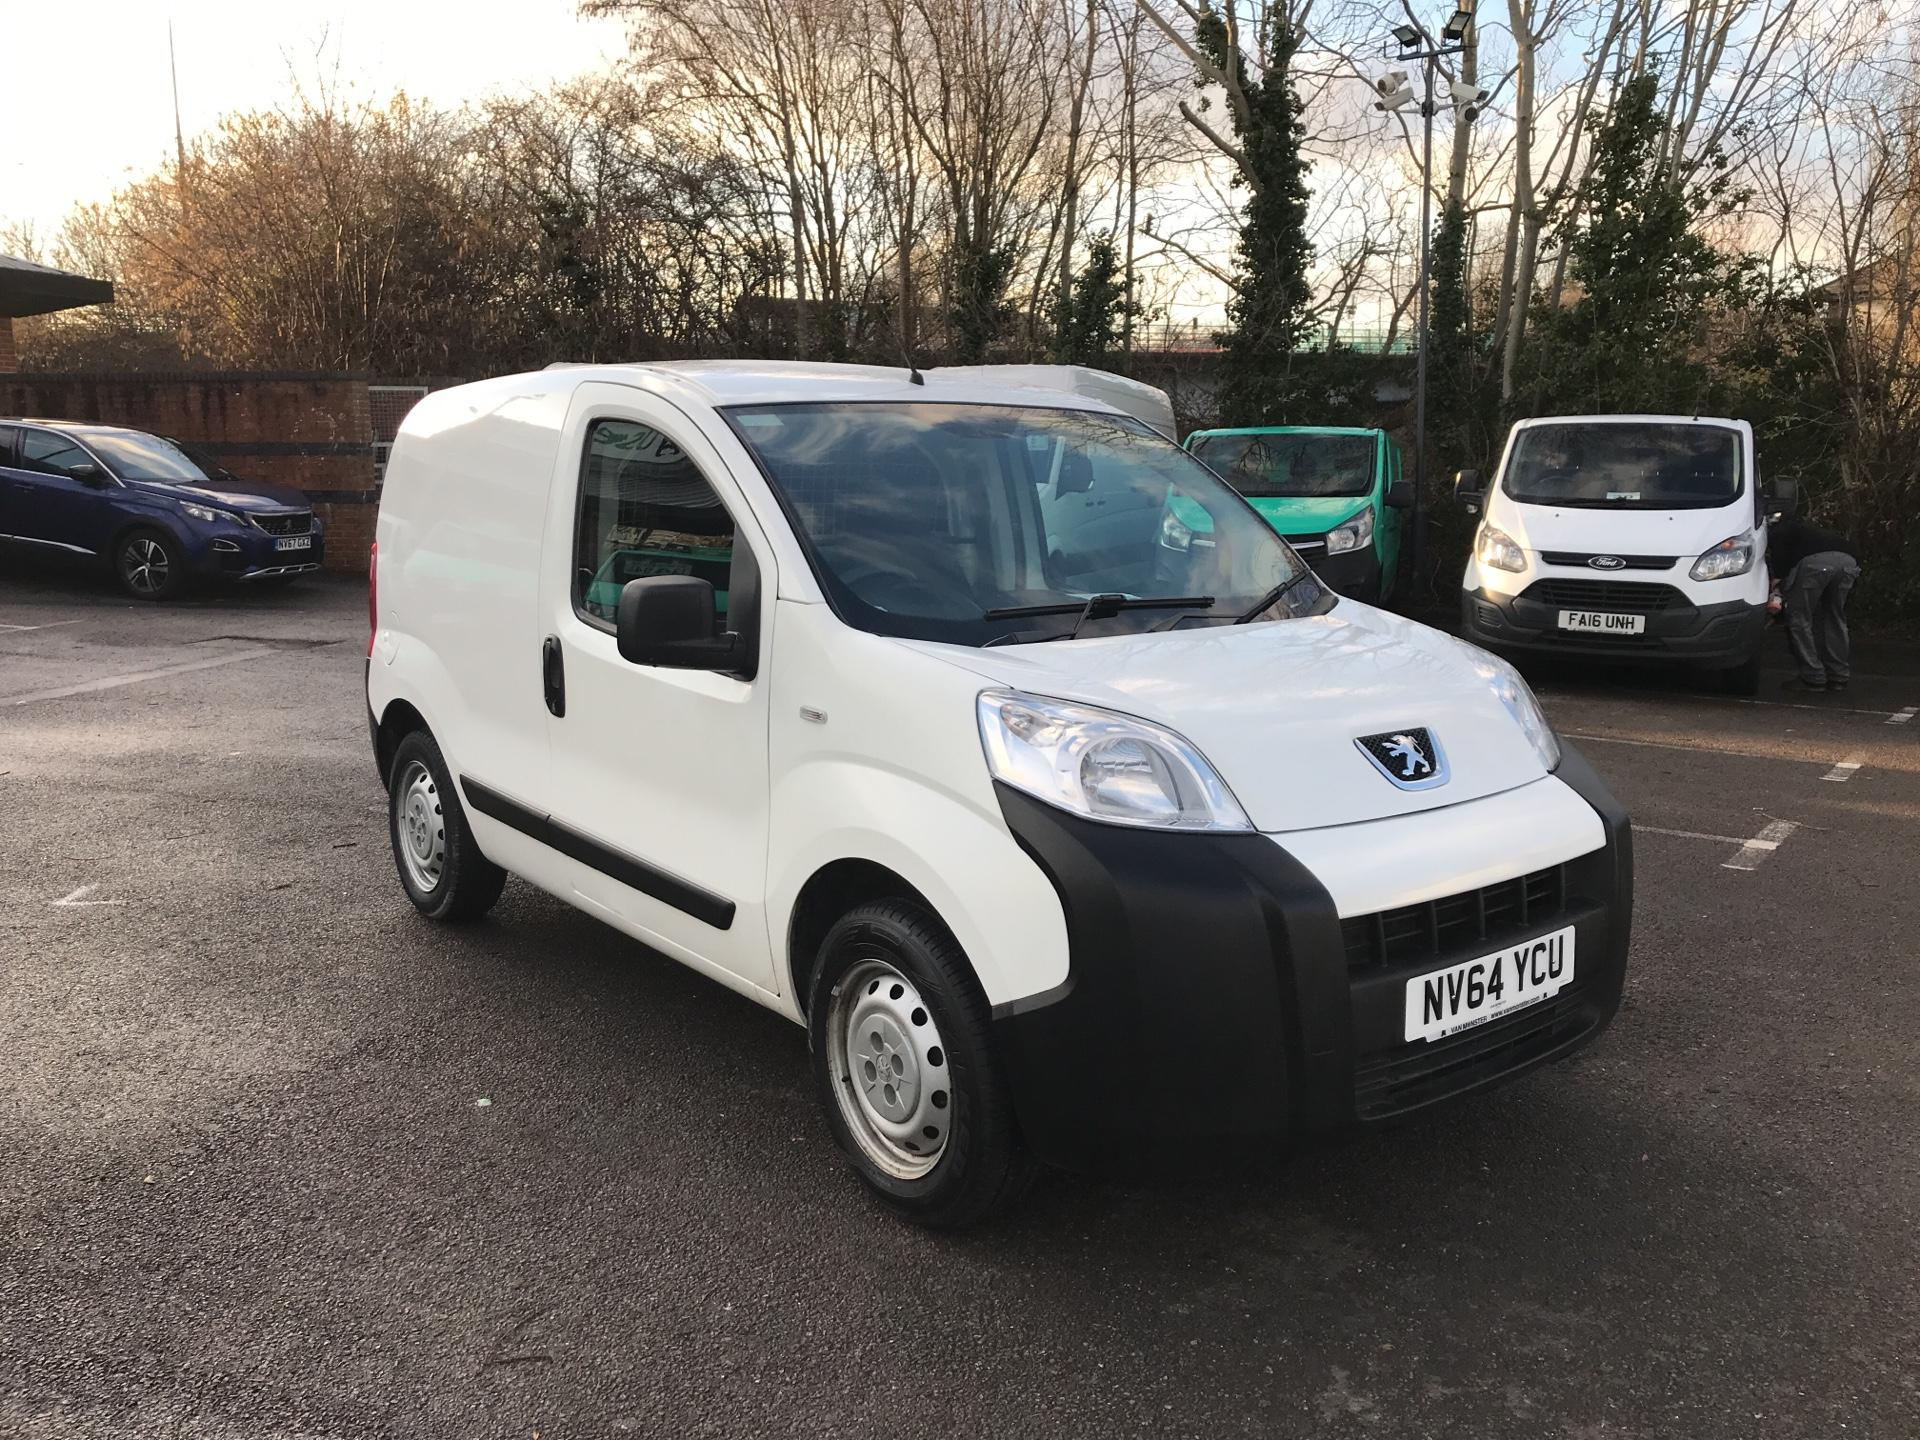 2015 Peugeot Bipper 1.3 HDI 75 S PLUS PACK NON S/S EURO 5 (NV64YCU) Image 1